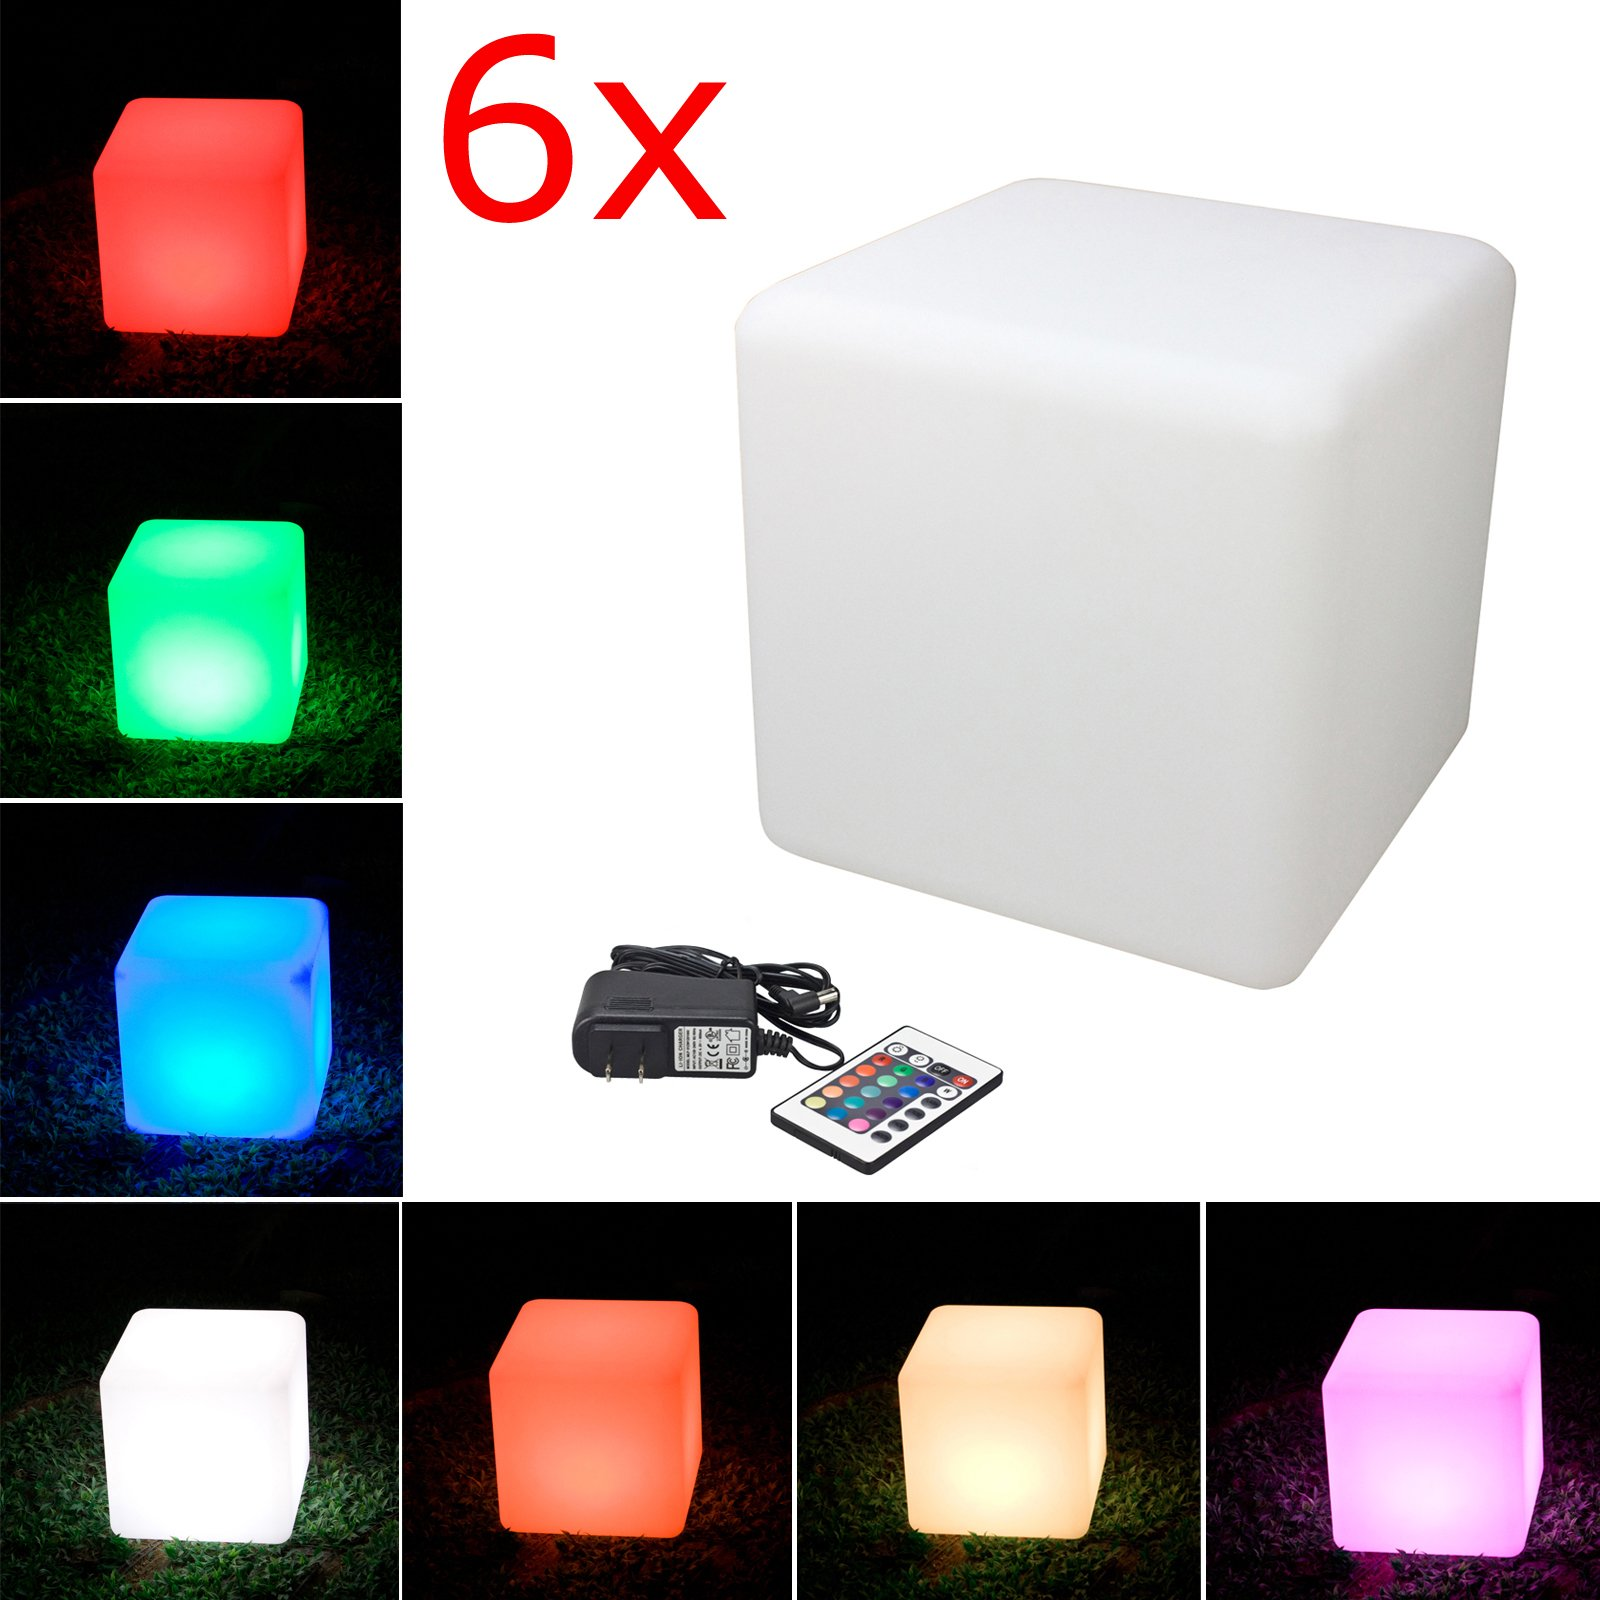 LED Cube Light, LOFTEK Shape Light, Rechargeable and Cordless Decorative Light with 16 RGB Colors and Remote Control, 16-Inch Cube, Pack of 6